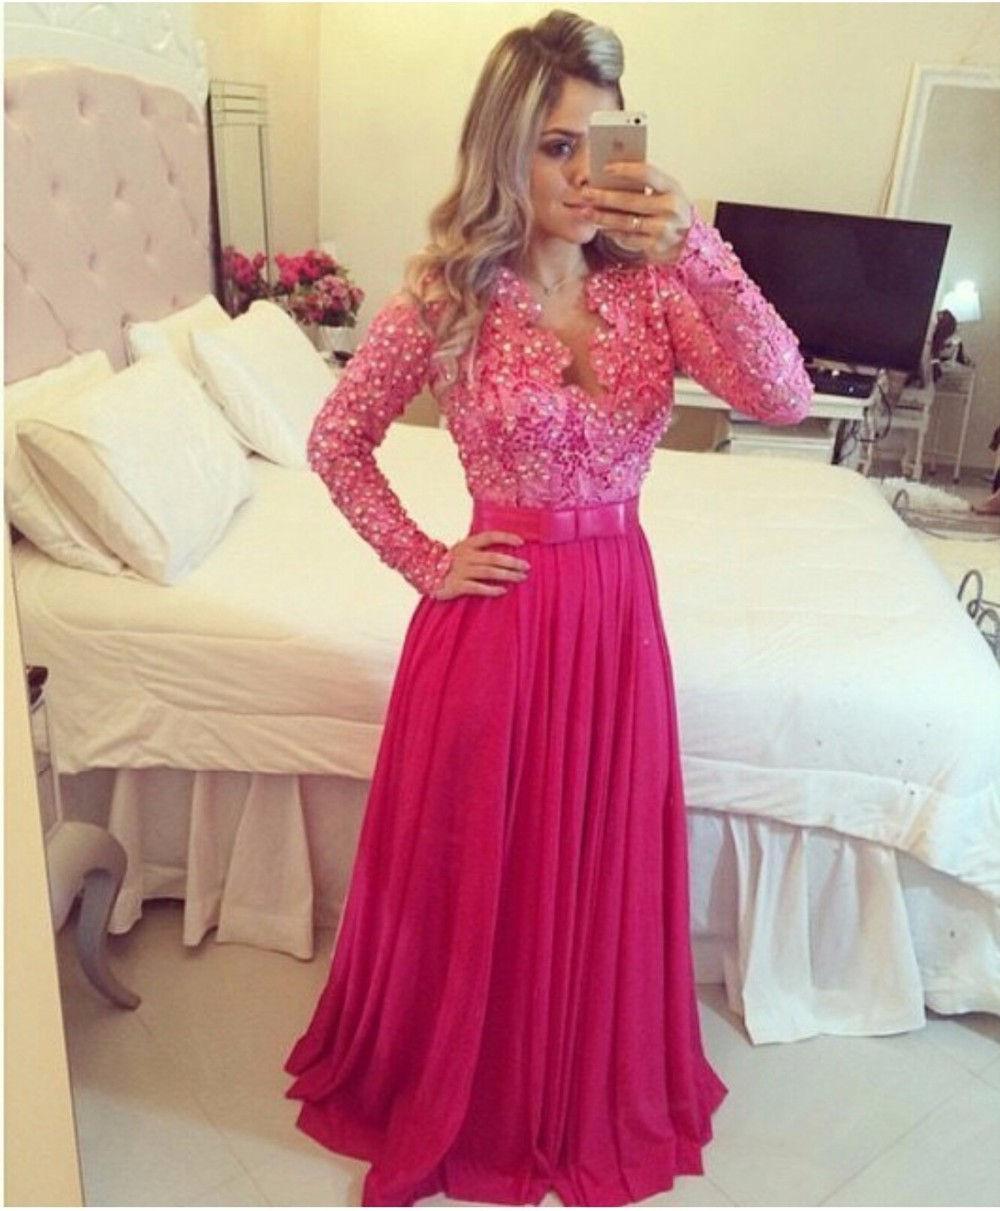 Contemporáneo Full Sleeved Prom Dresses Fotos - Colección de ...